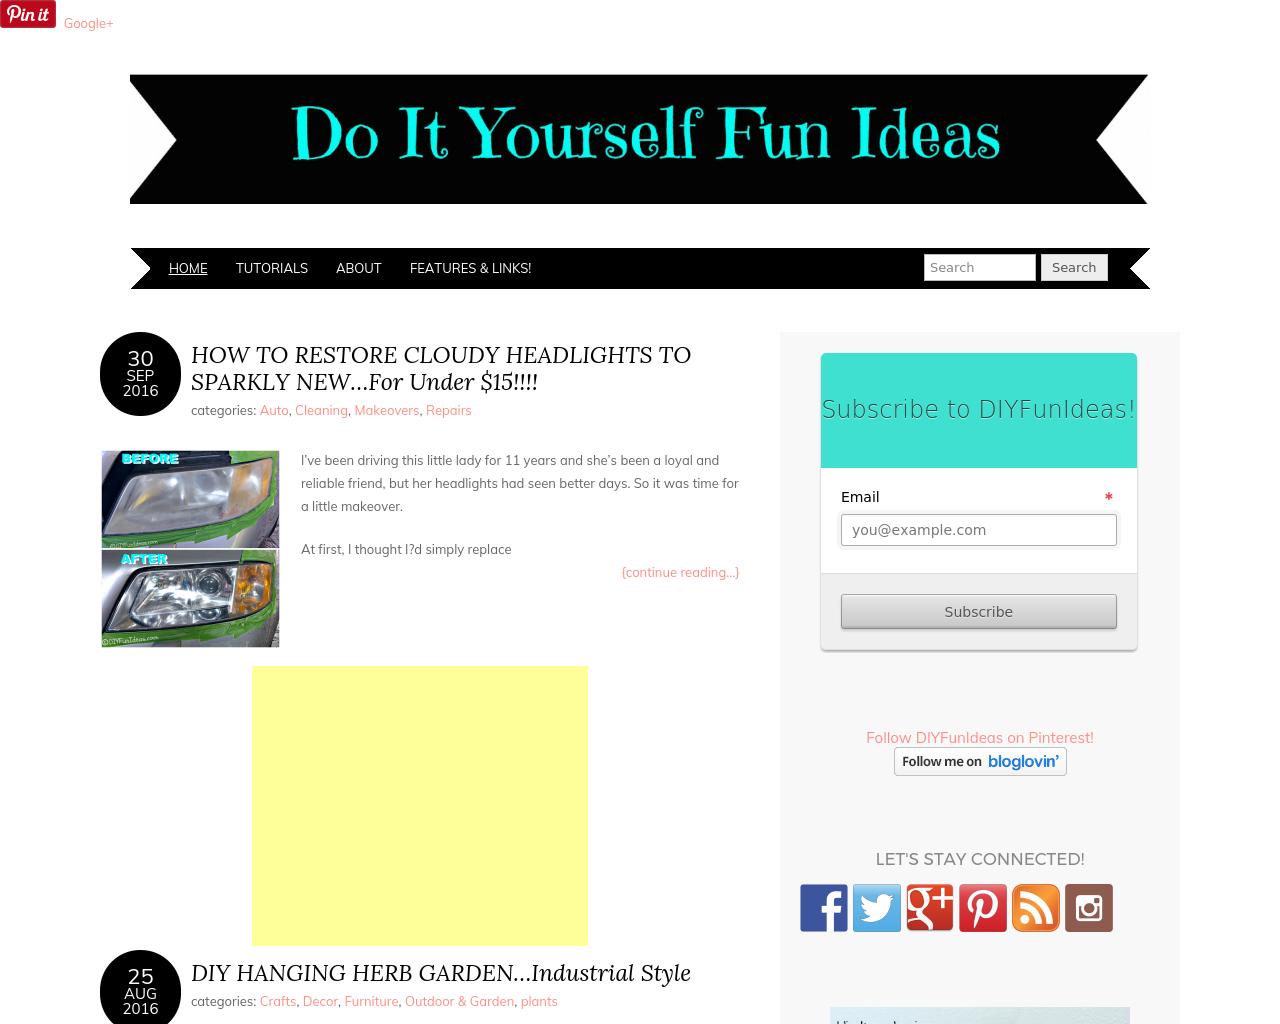 Do-It-Yourself-Fun-Ideas-Advertising-Reviews-Pricing